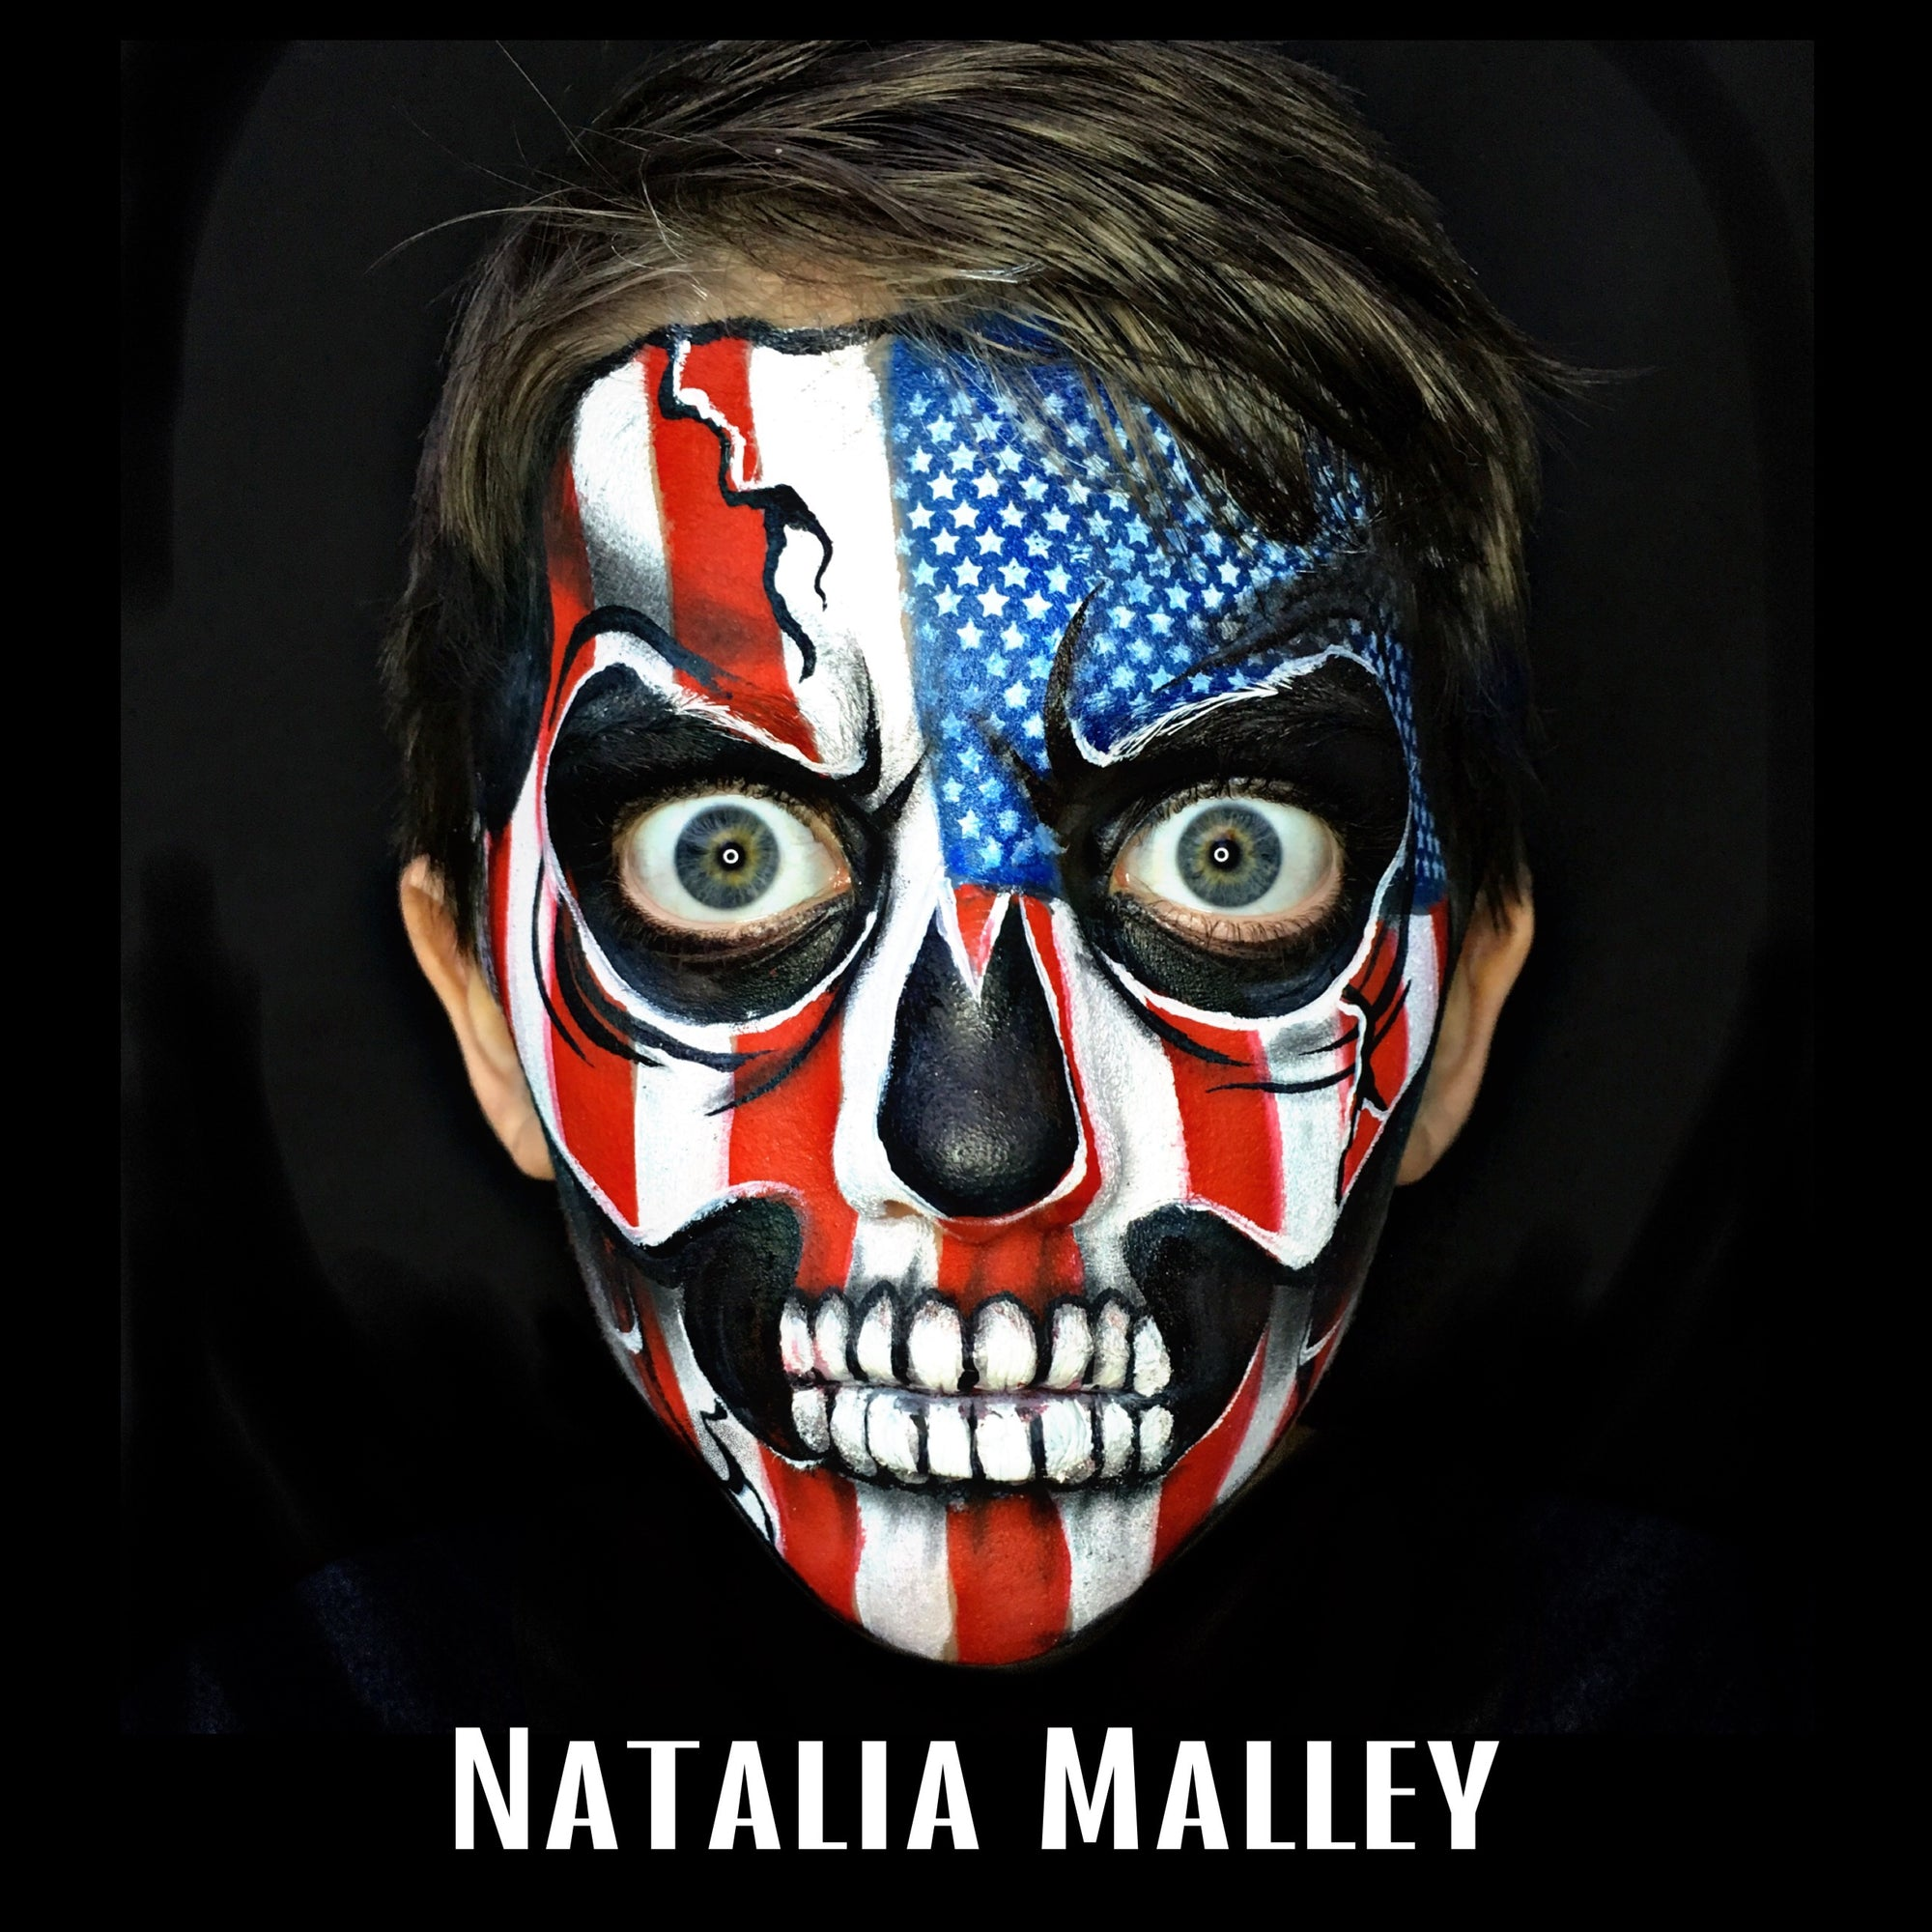 Patriotic Skull by Natalia Malley